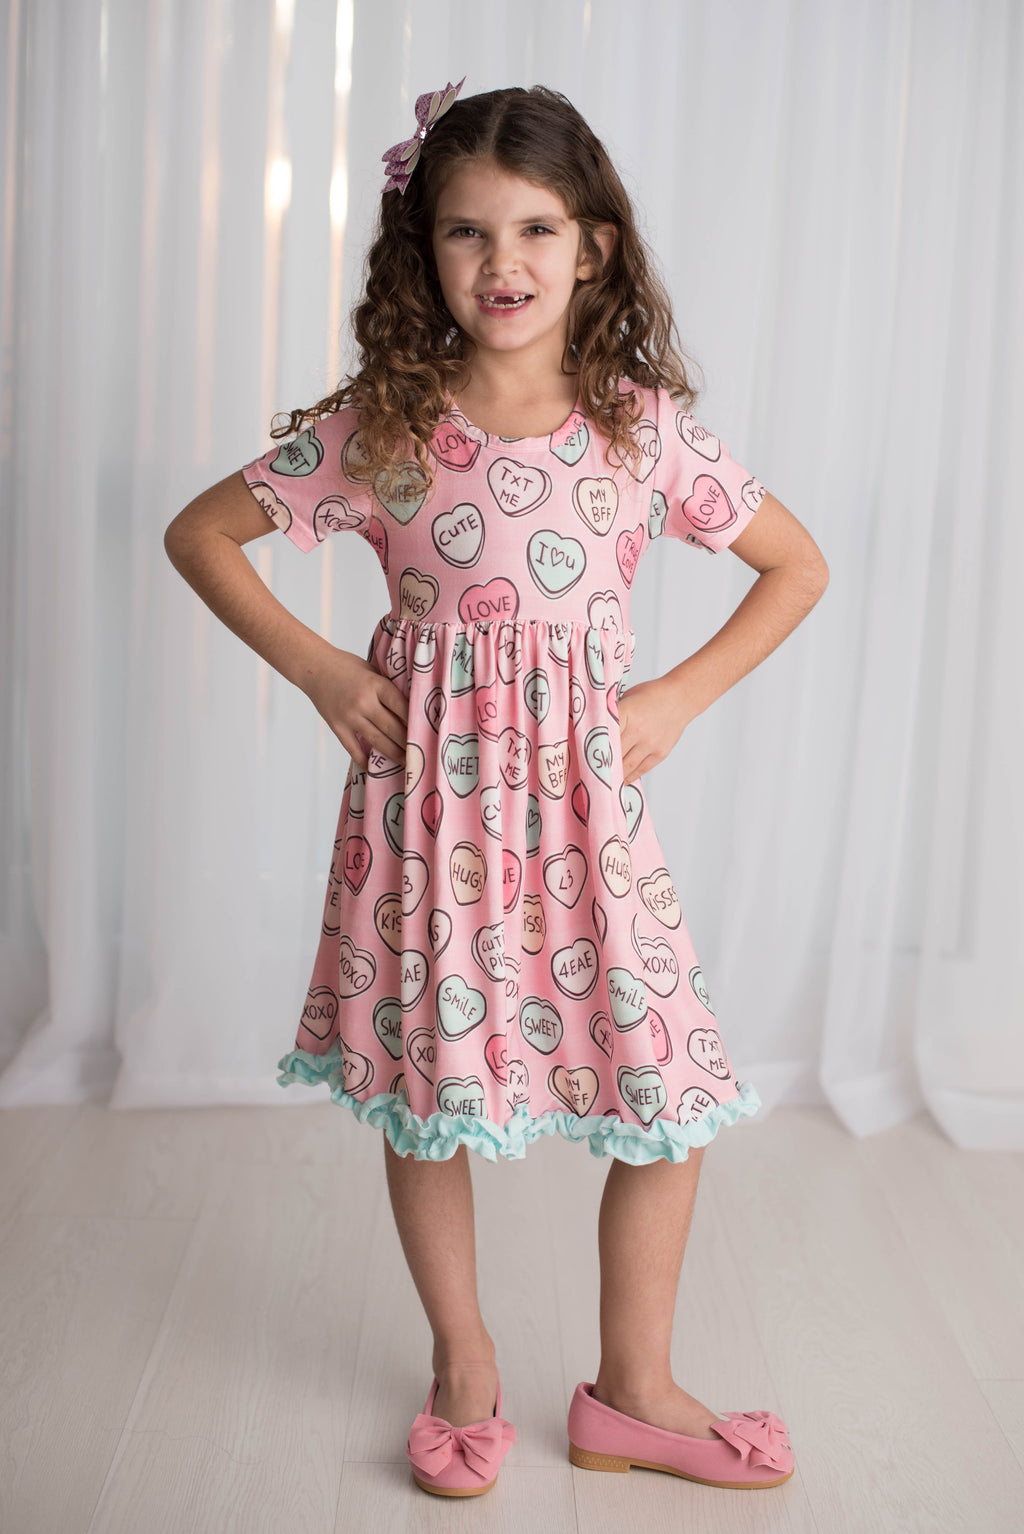 VALENTINE CANDY HEARTS DRESS